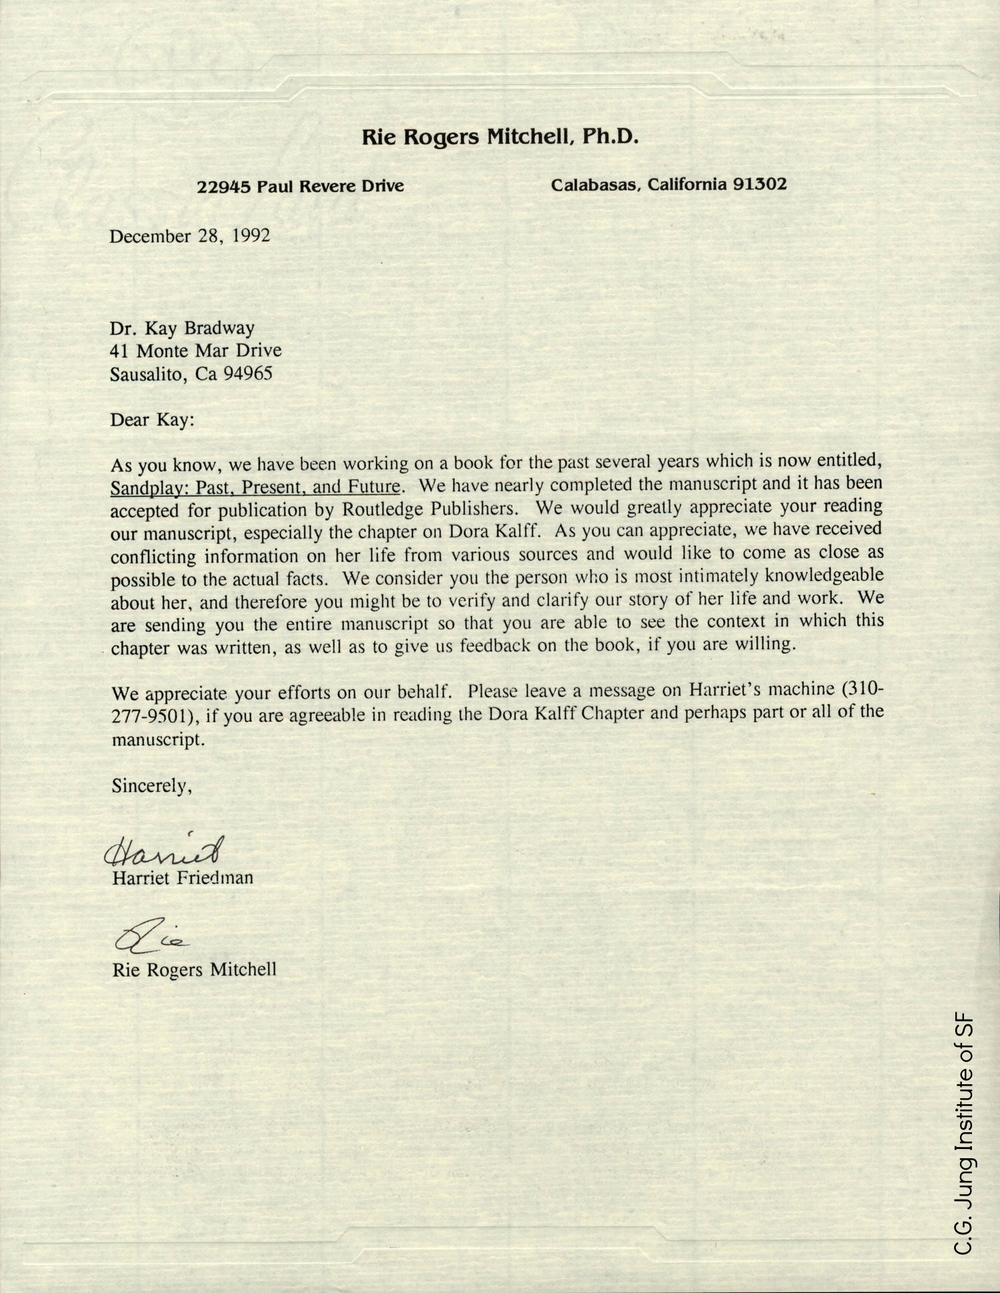 Letter requesting Kay's review of chapter on Dora Kalff in Sandplay: Past, Present, and Future (1992).